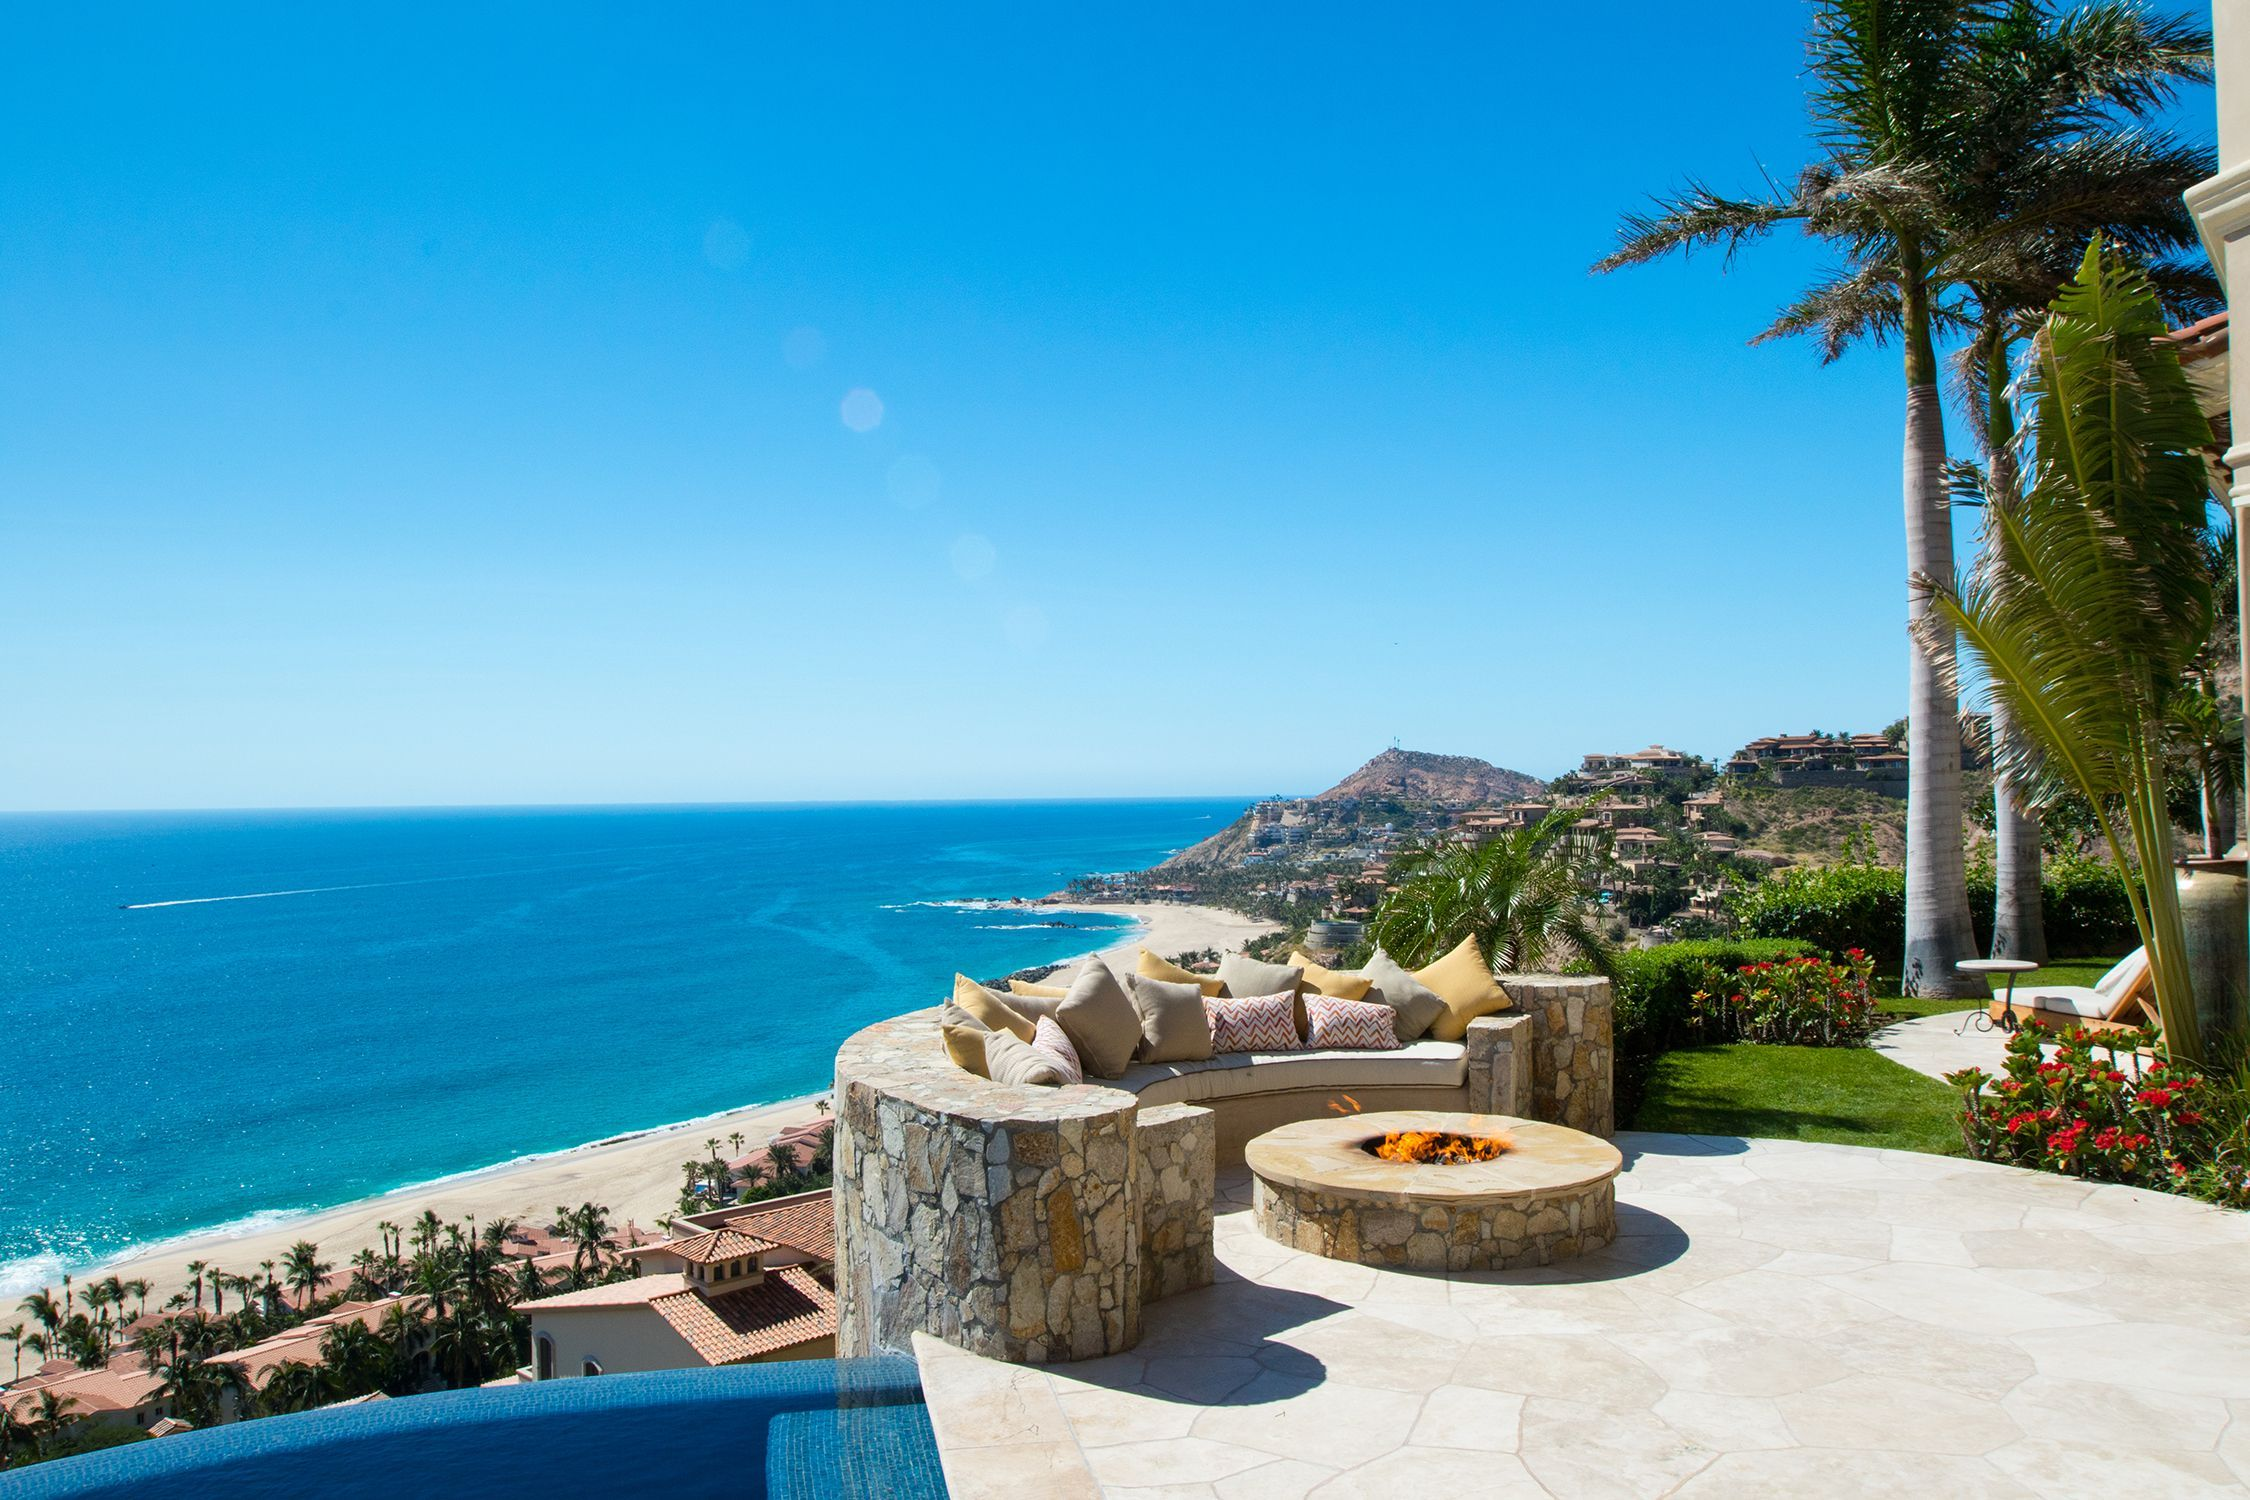 Lifestyle In Cabo Michael Baldwin Properties Los Cabos Baja California Sur Mexico Info Lifestyleincabo Com C Indoor Outdoor Living Panoramic Views Villa